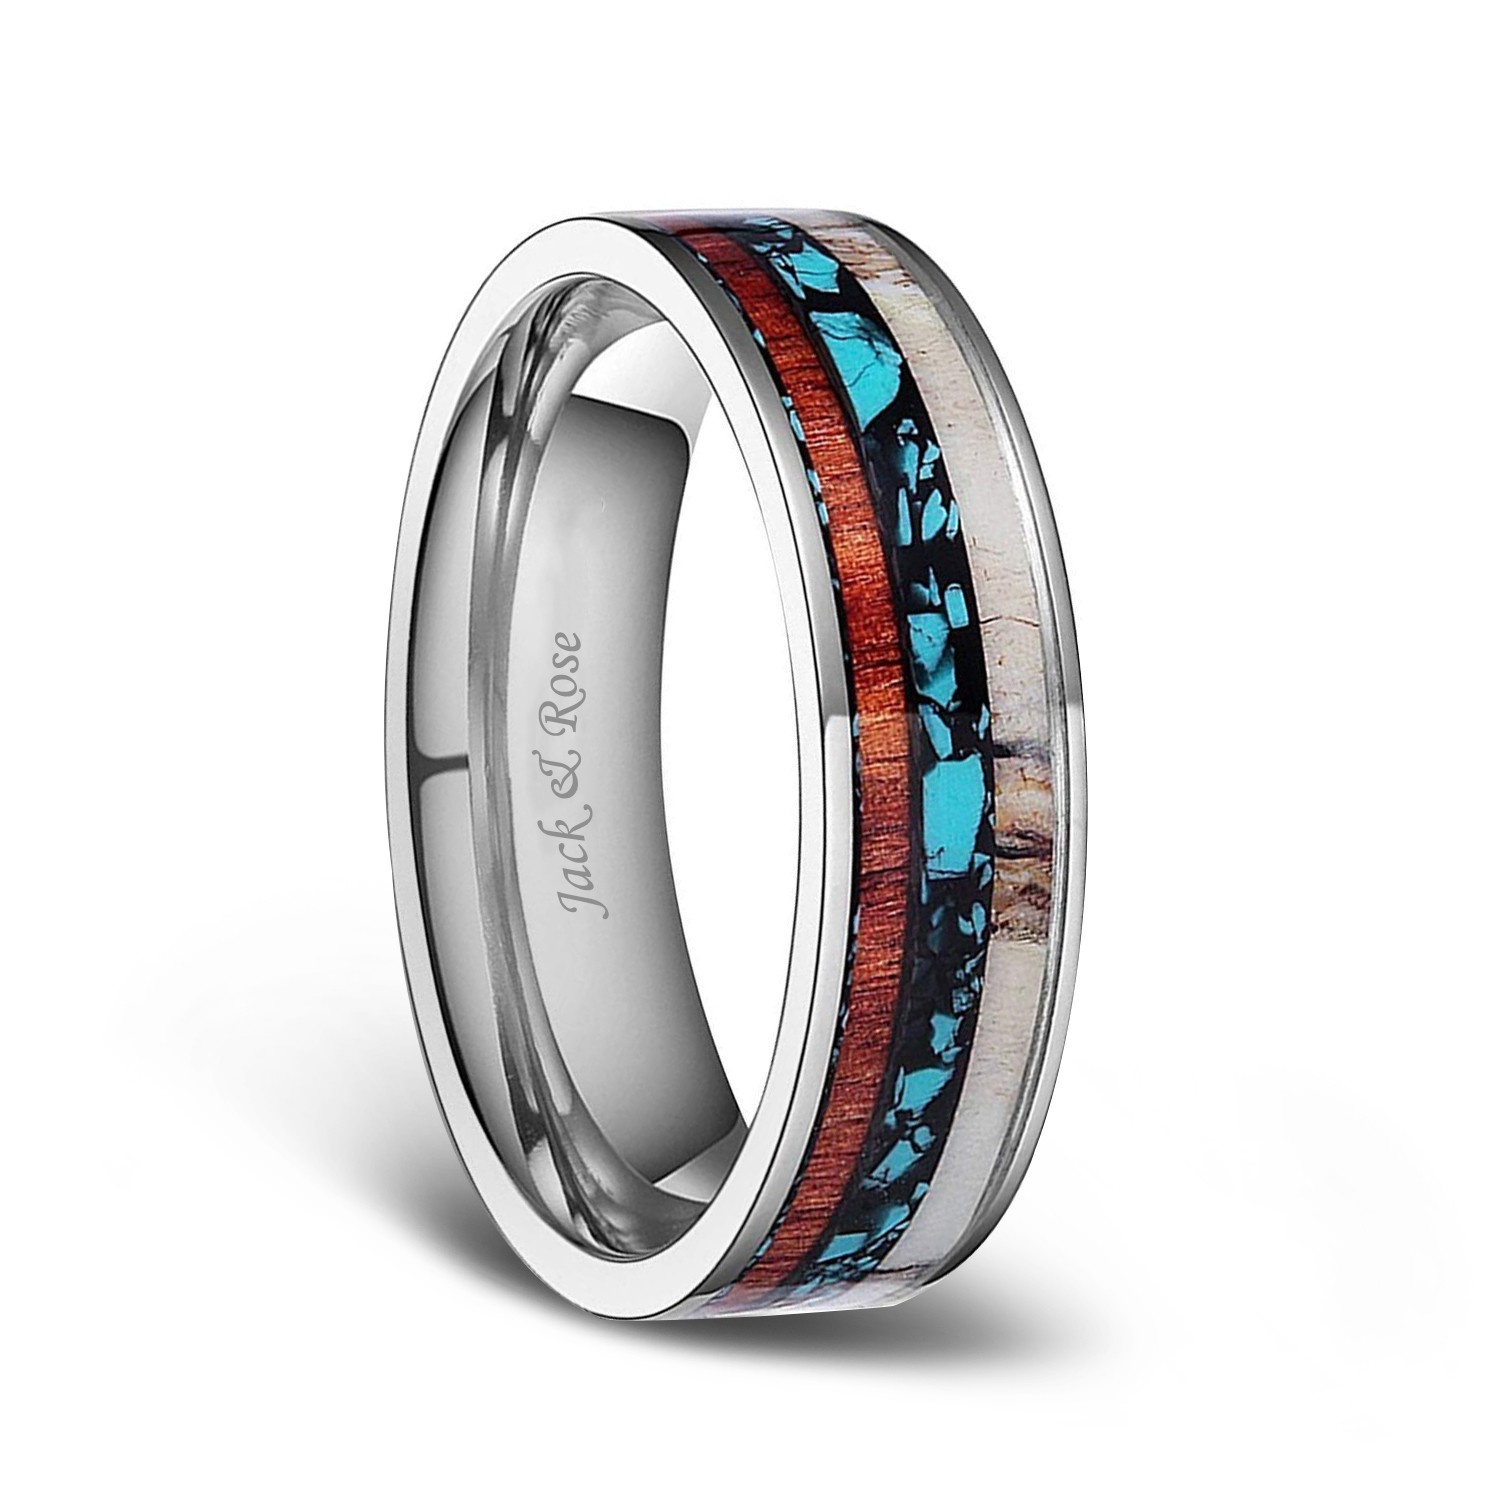 Titanium Wedding Bands With Deer Antlers And Turquoise Wood Inlay 6mm: Antler Wedding Ring Turquoise At Websimilar.org